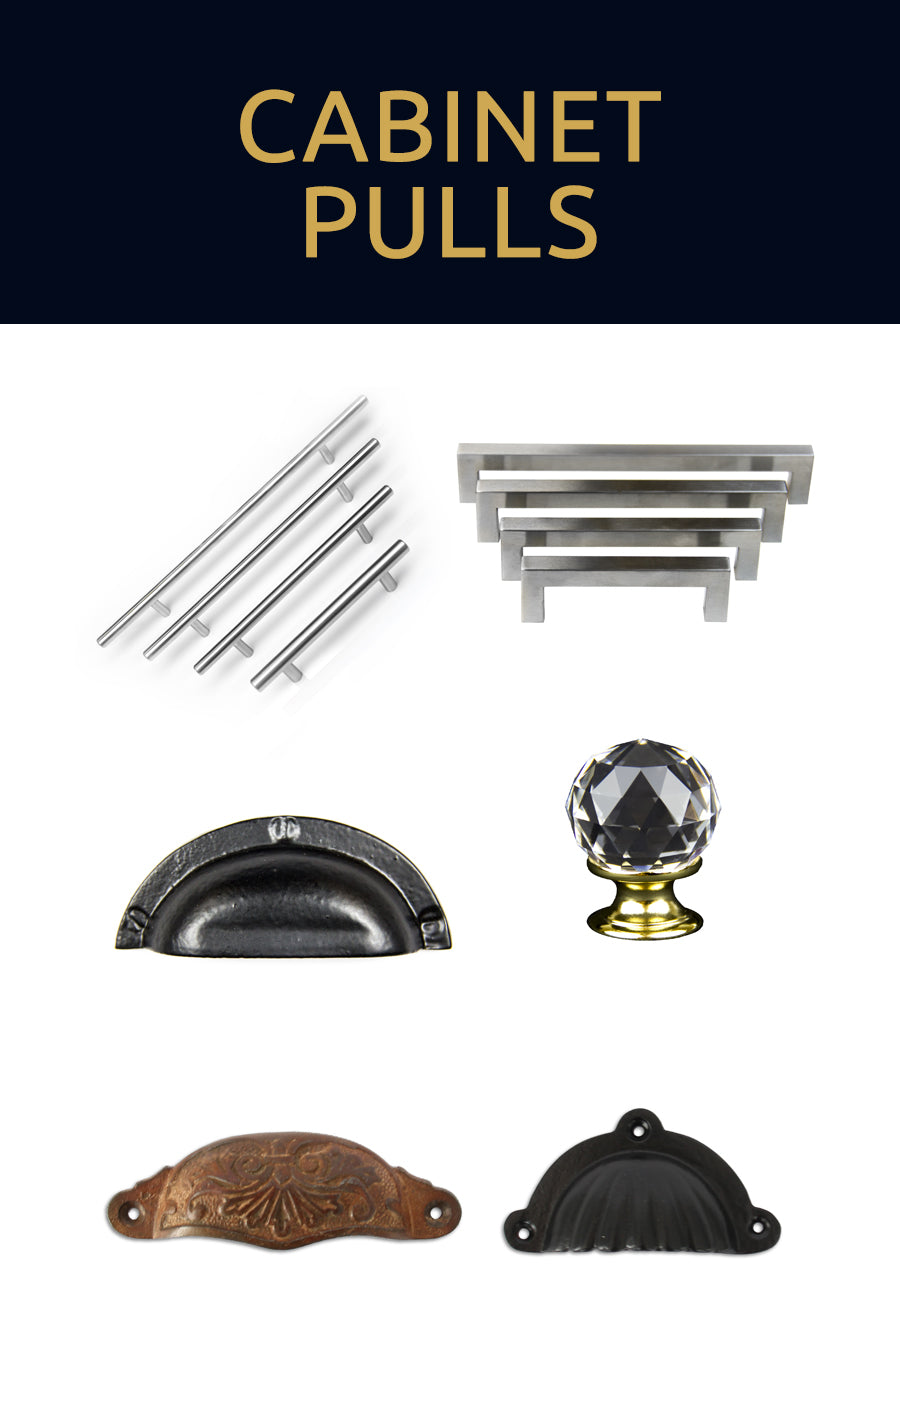 Browse our cabinet pulls collection for decorating cabinet doors